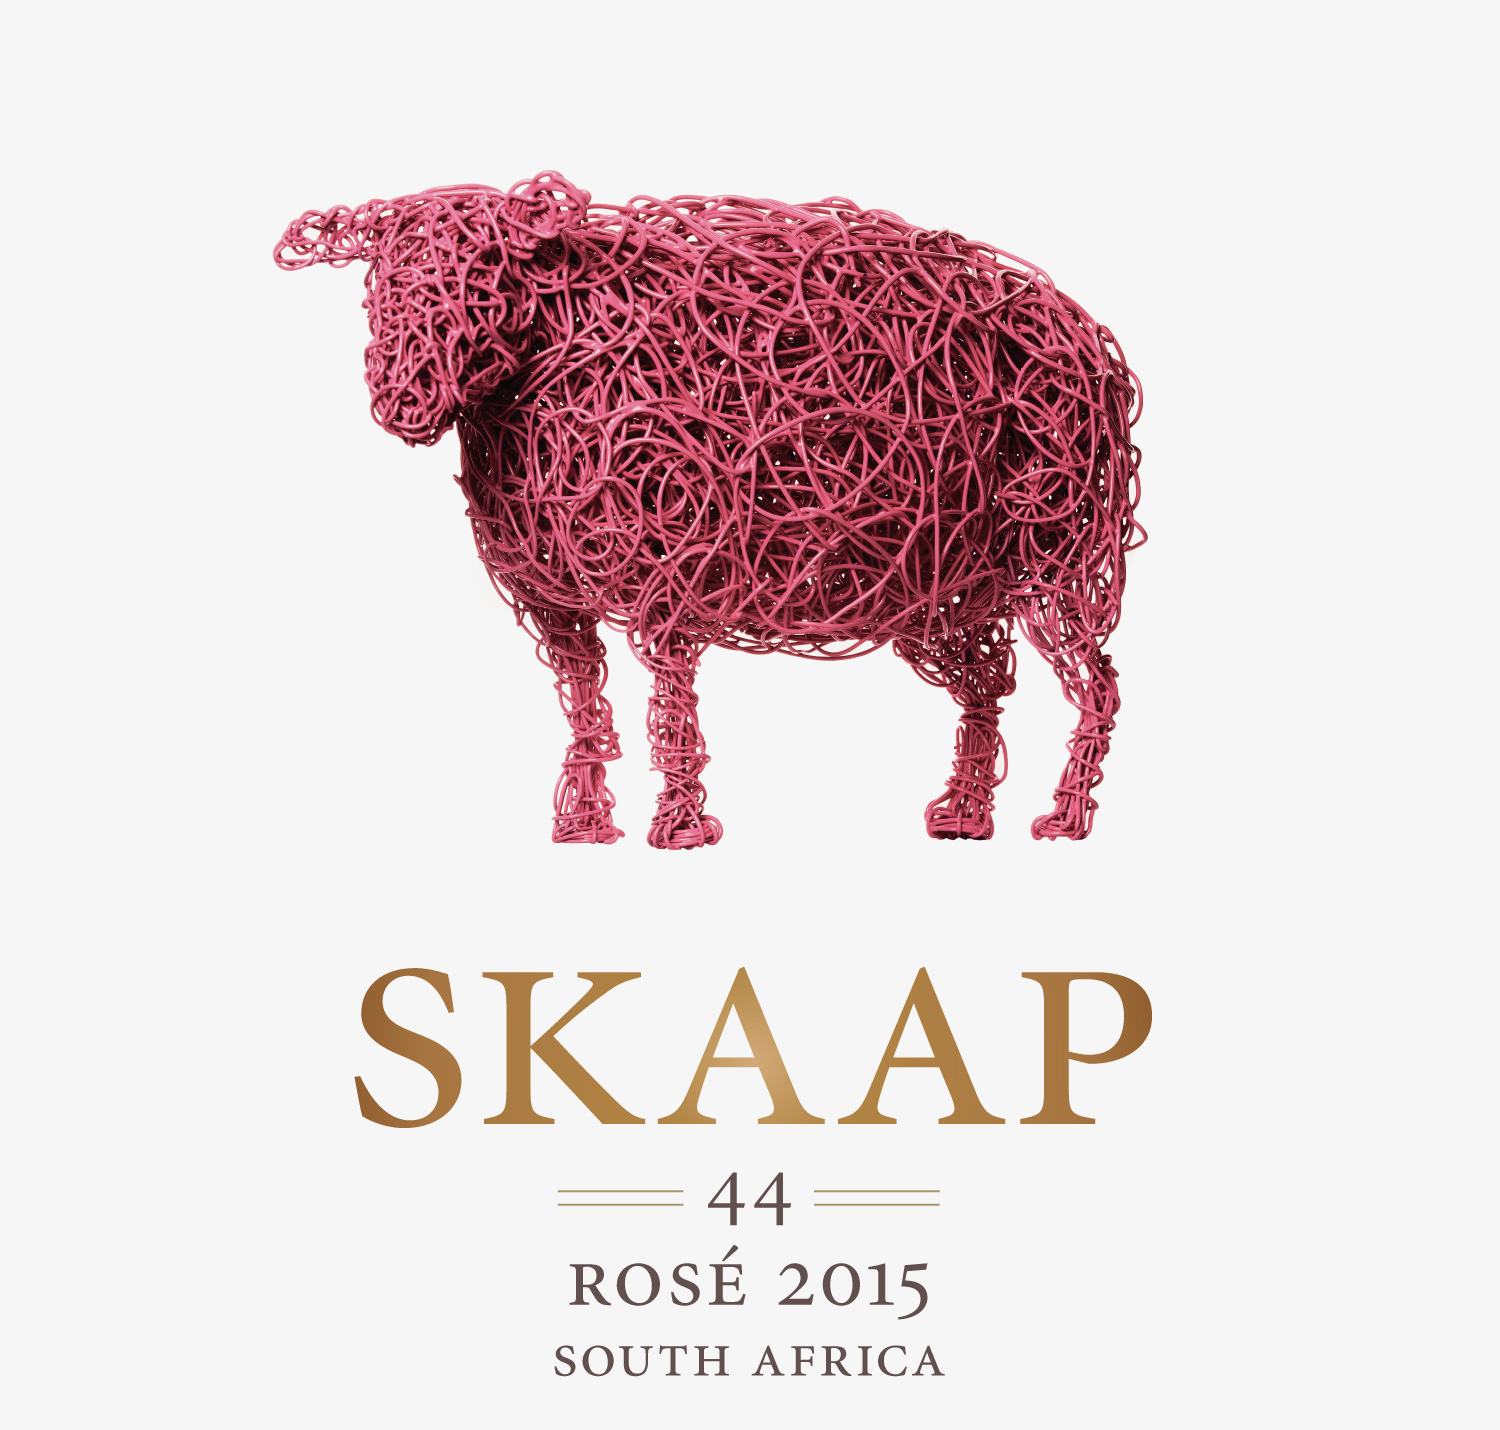 Skaap-44-Rose-label.jpg